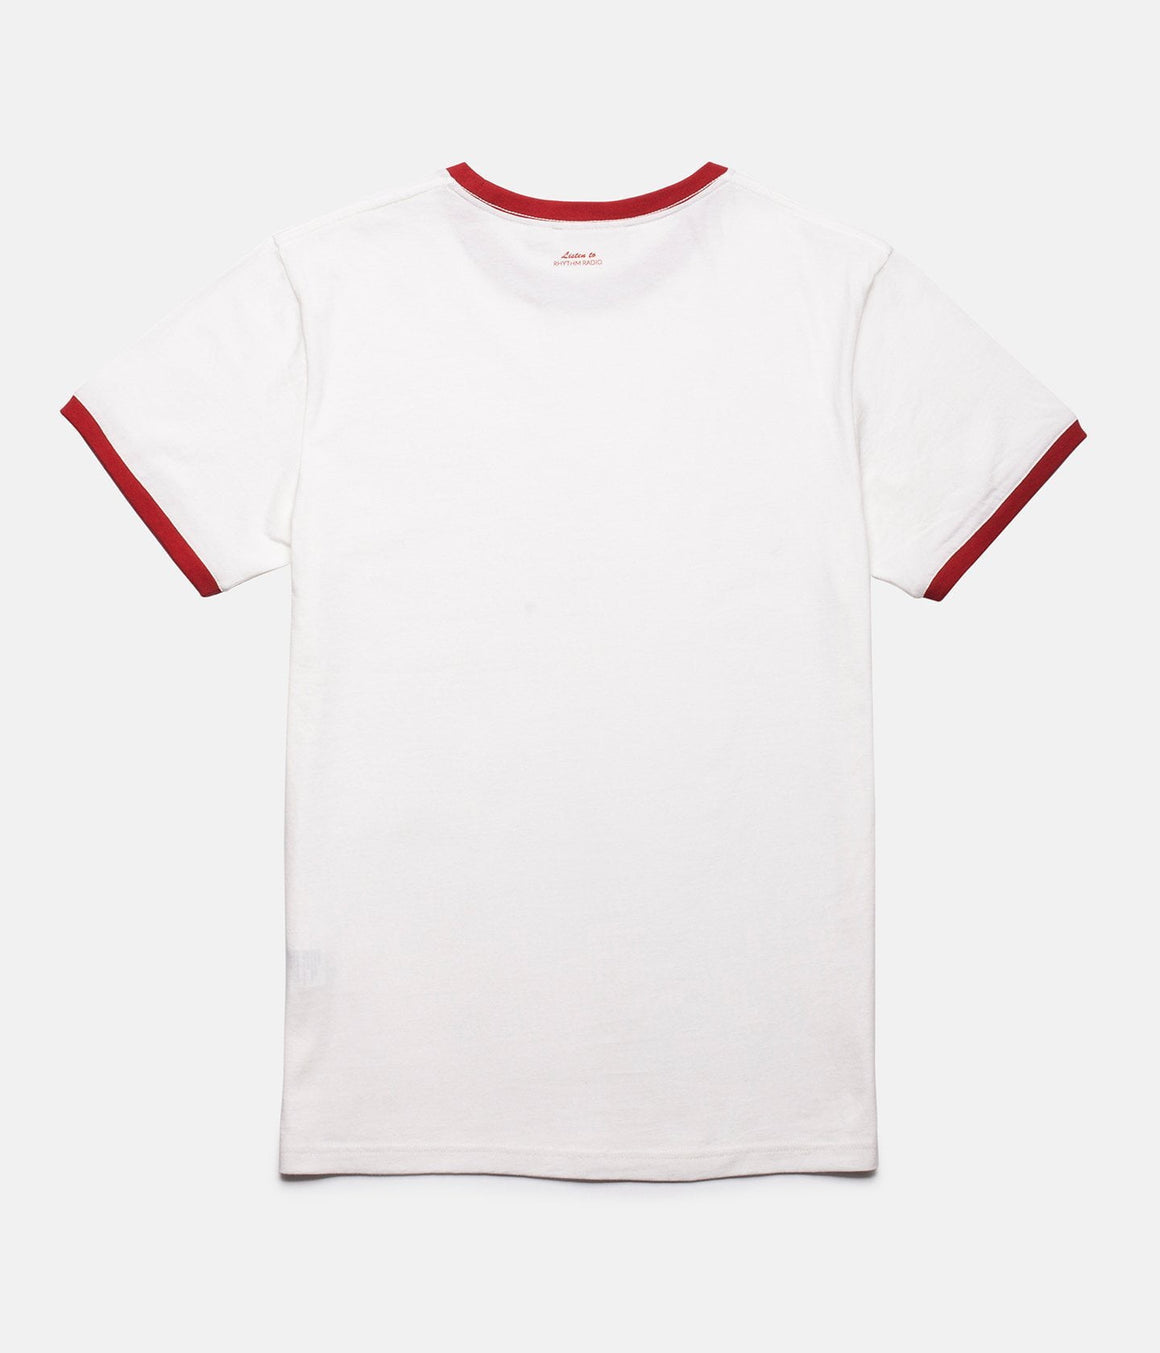 Ringer T Shirt - White / Red